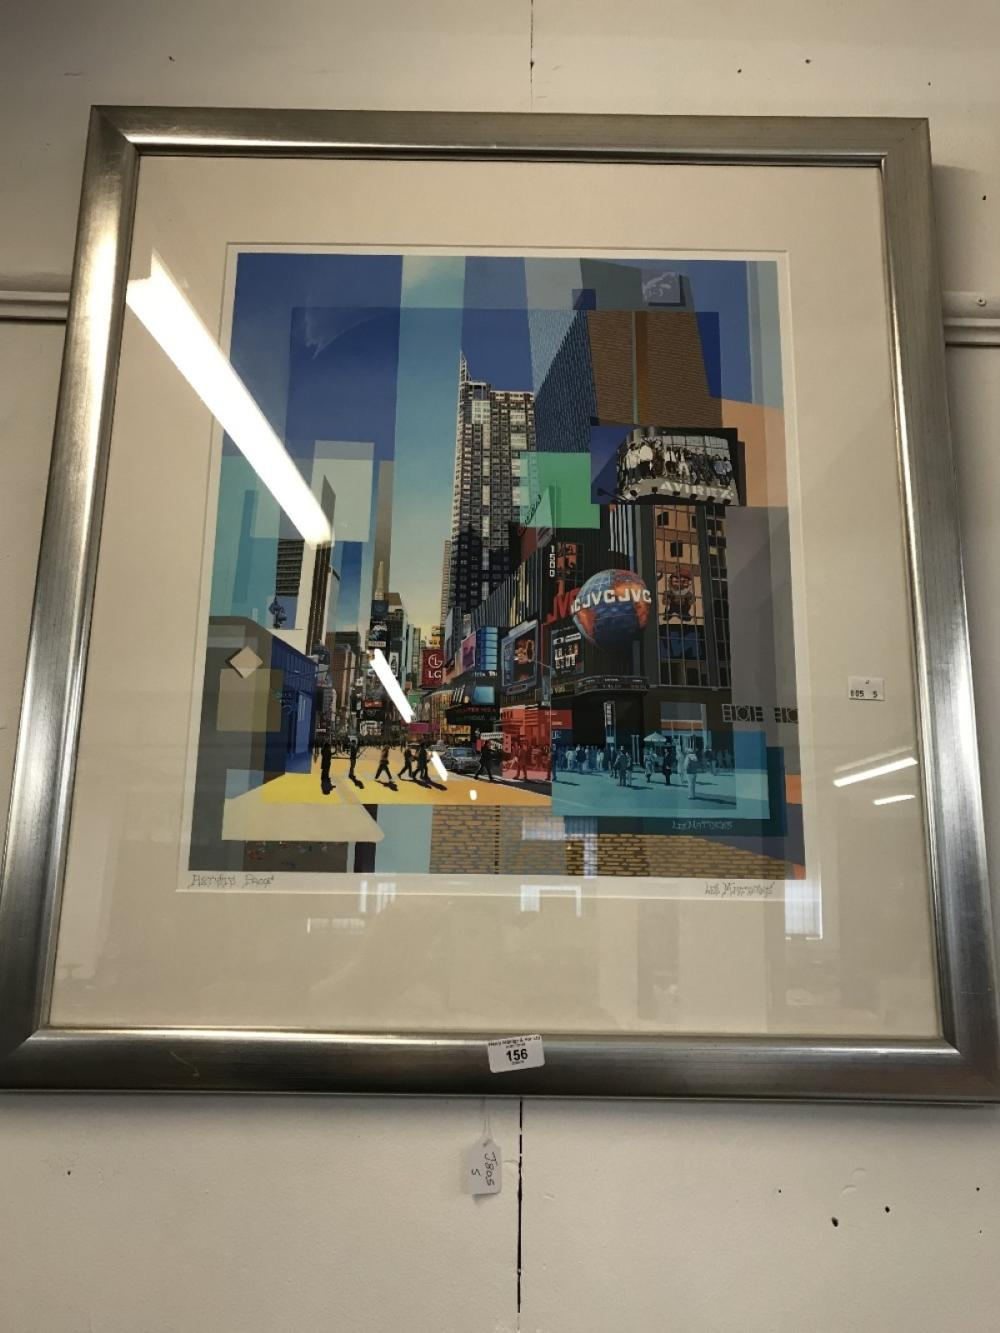 Les Matthews: 20th cent. Artists proof, limited edition print on paper of Times Square New York. Fra